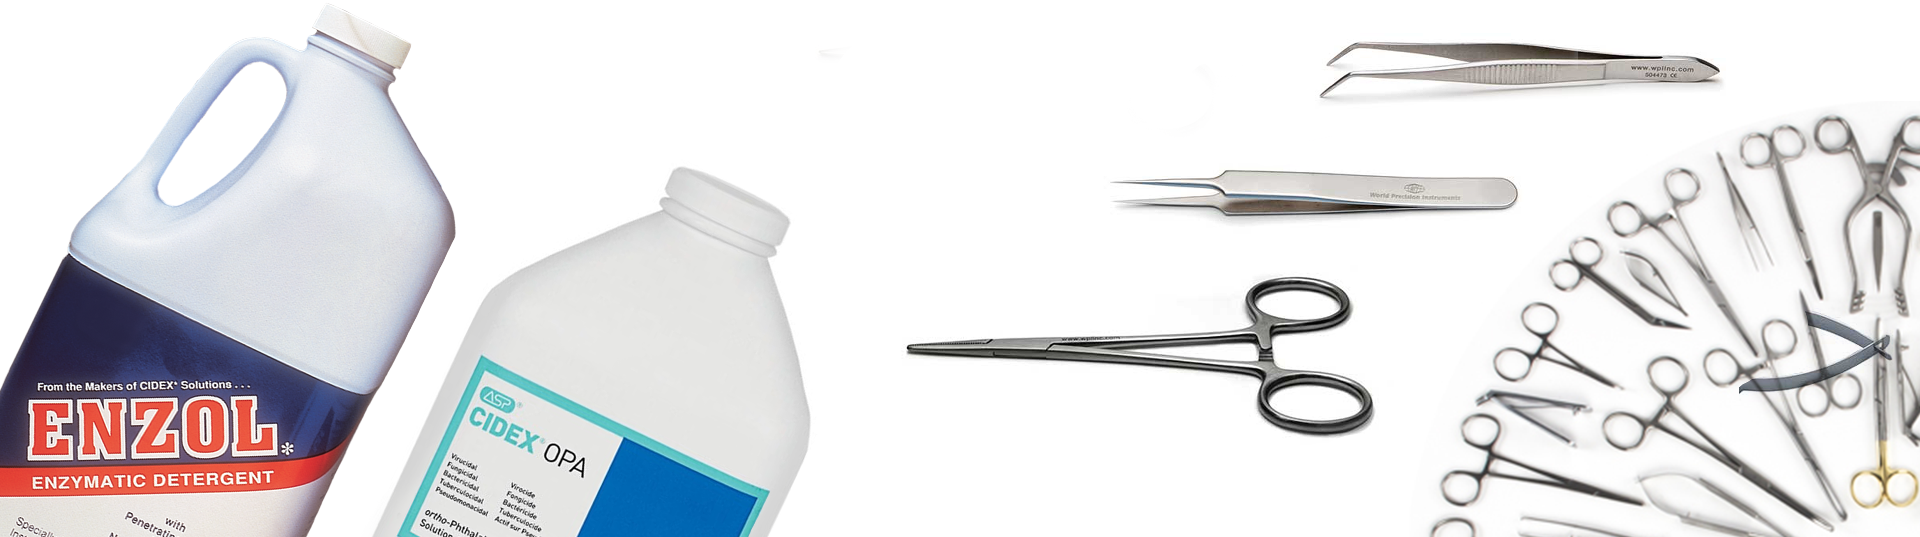 Surgical Instrument Cleaners